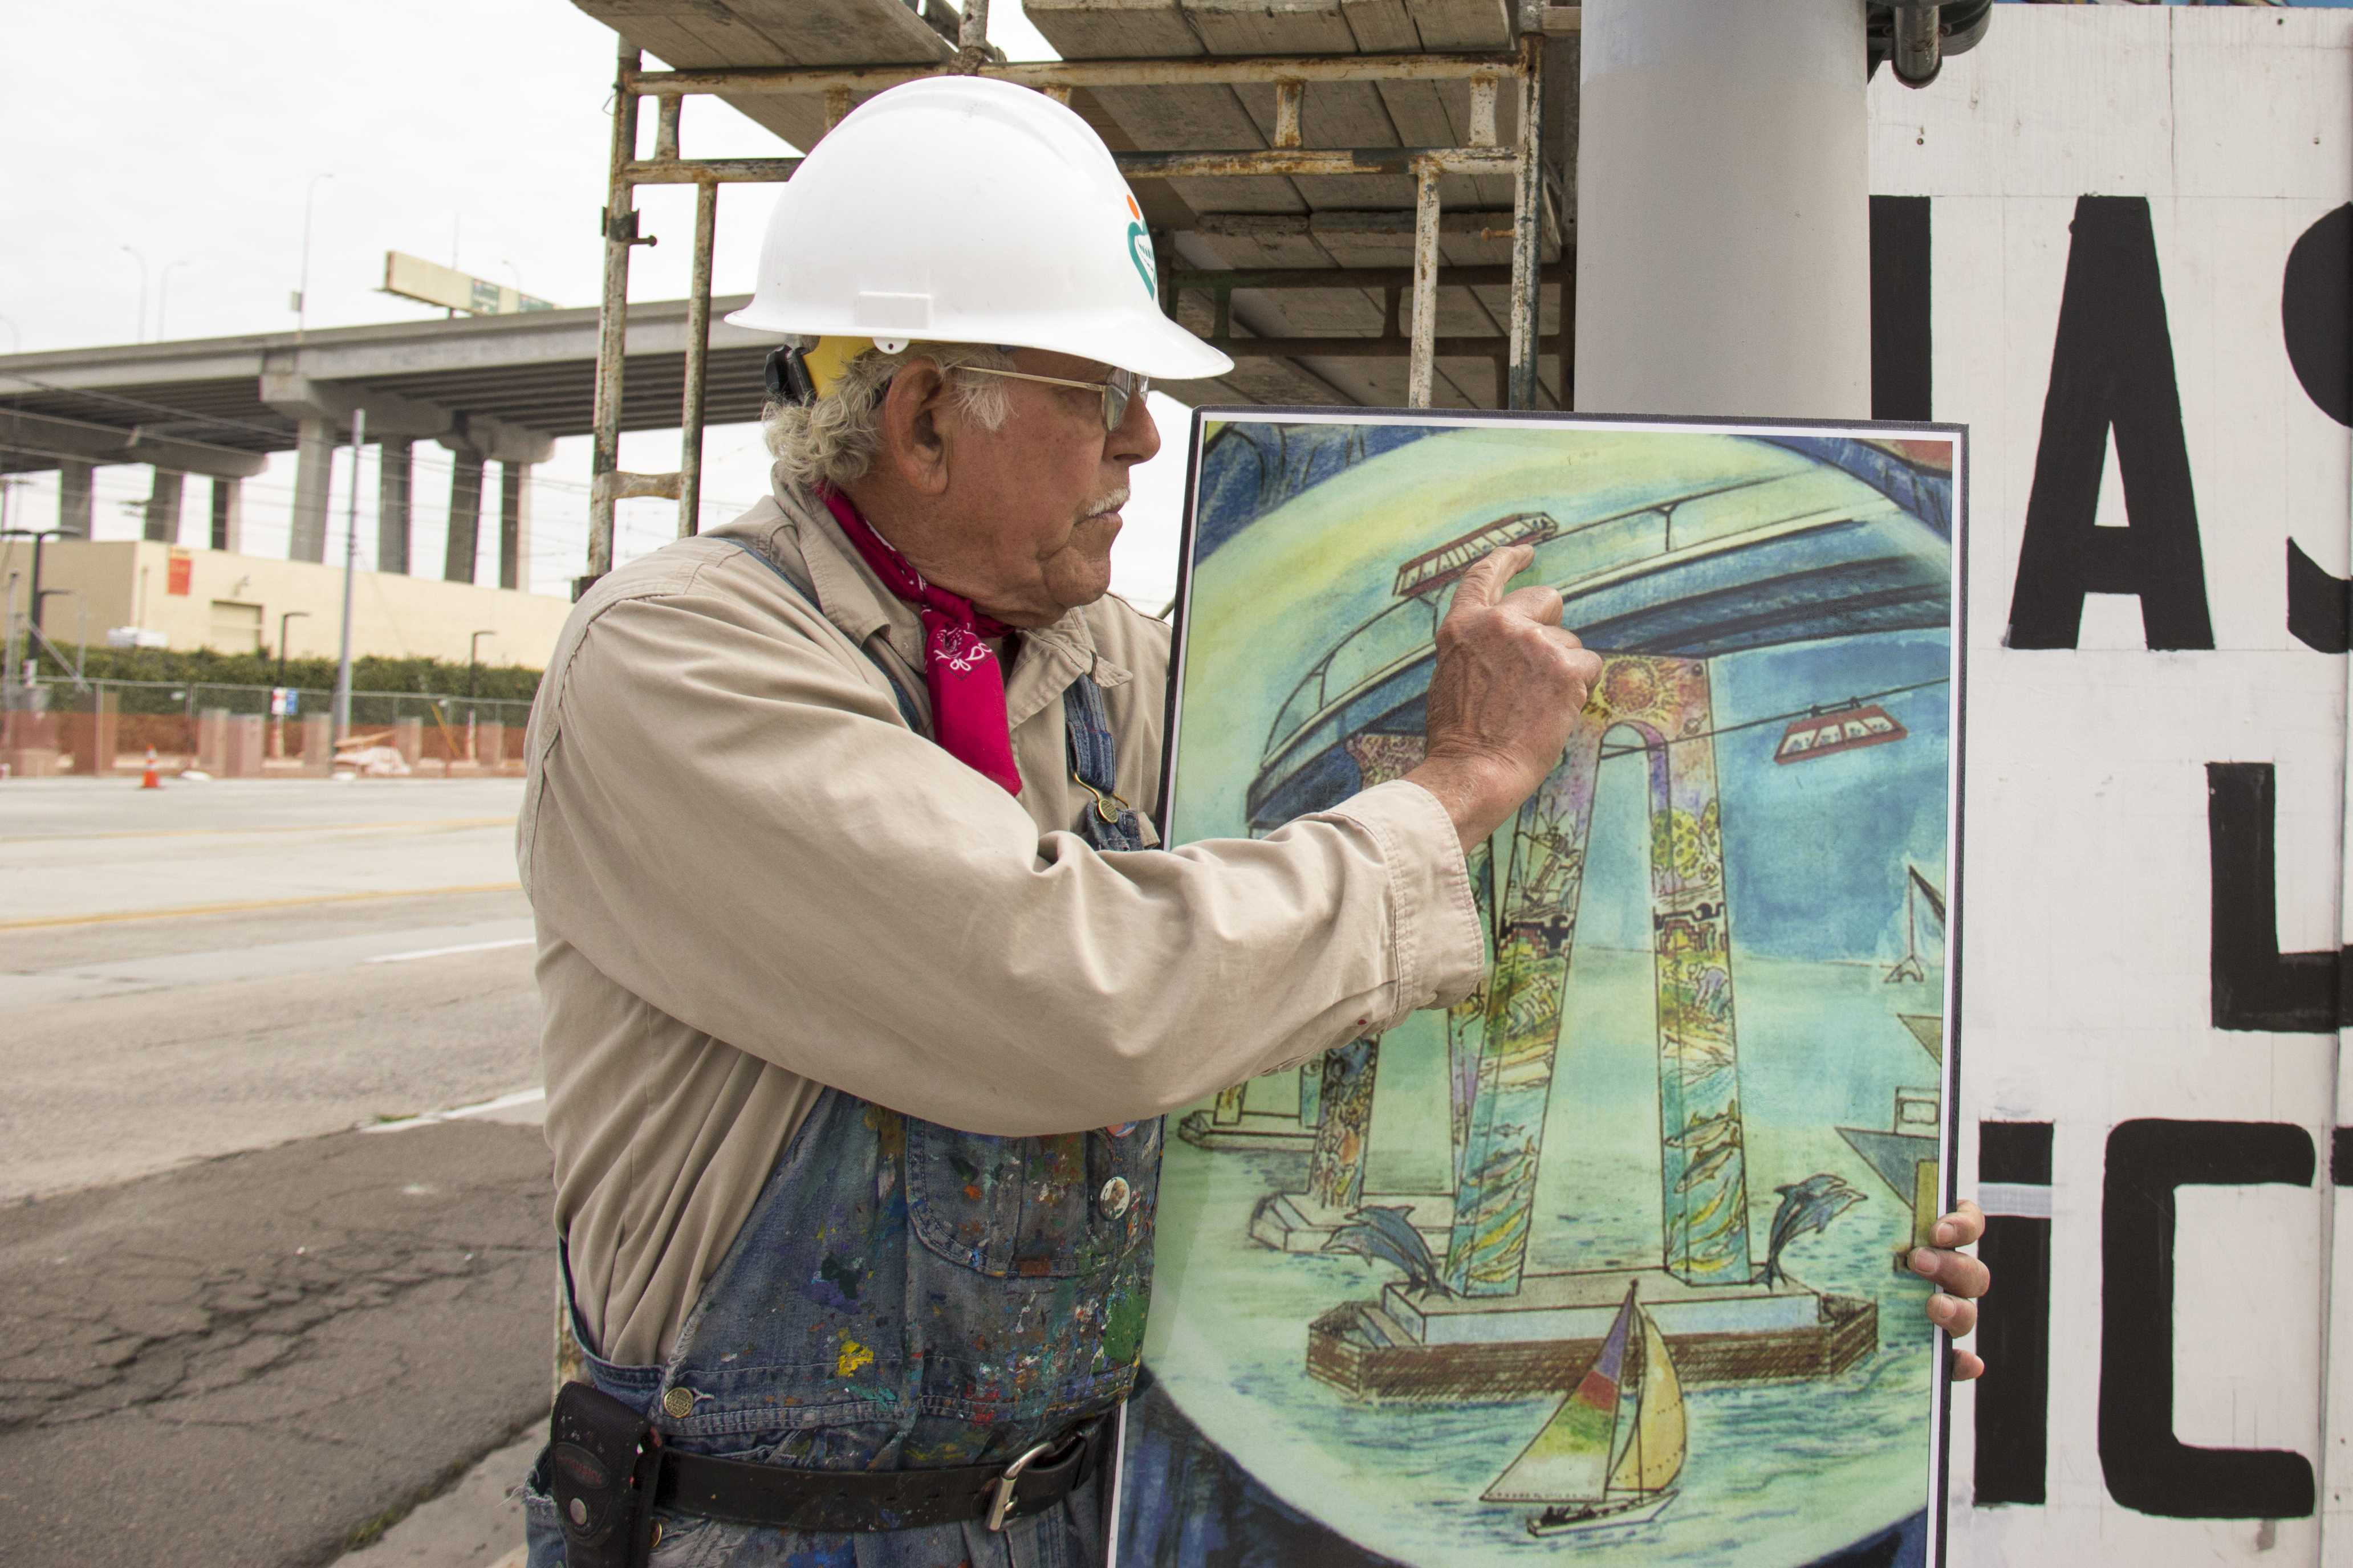 Local artist Salvador Roberto Torres displays his rendition for the completed mural project. Photo credit: Celia Jimenez